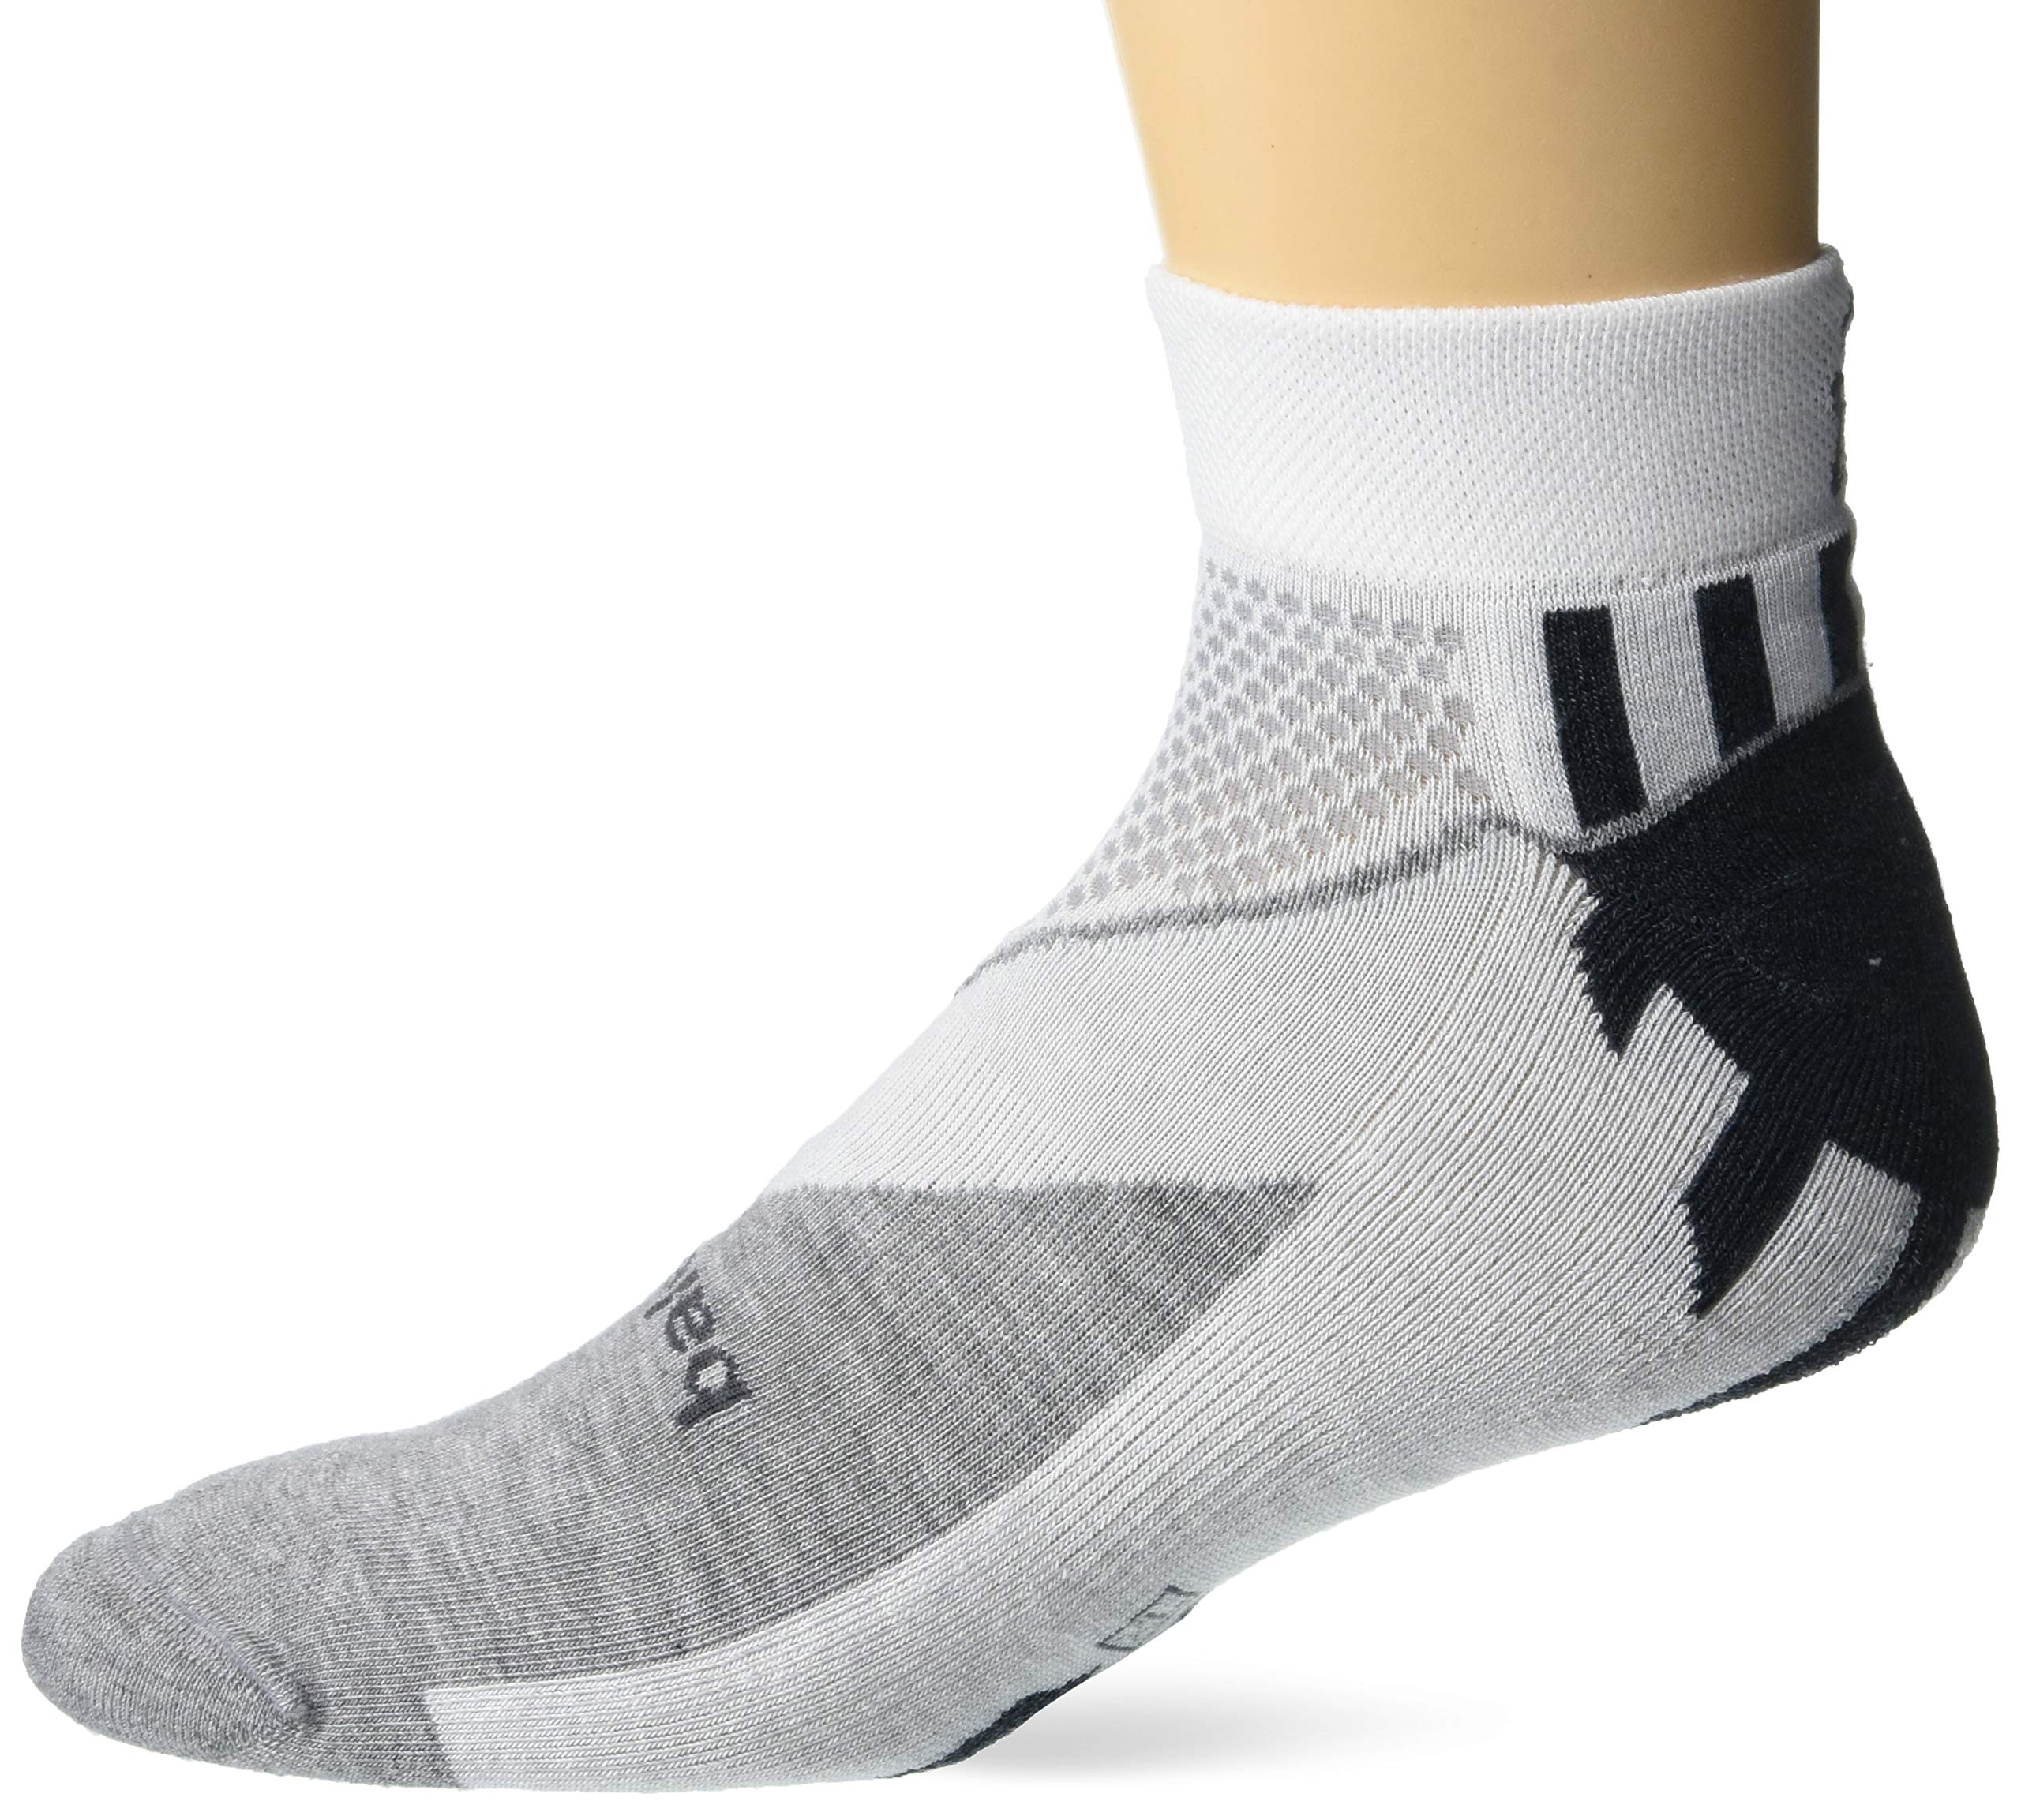 Balega Hidden Comfort No-Show Running Socks for Men and Women (1 Pair), White, Large by Balega